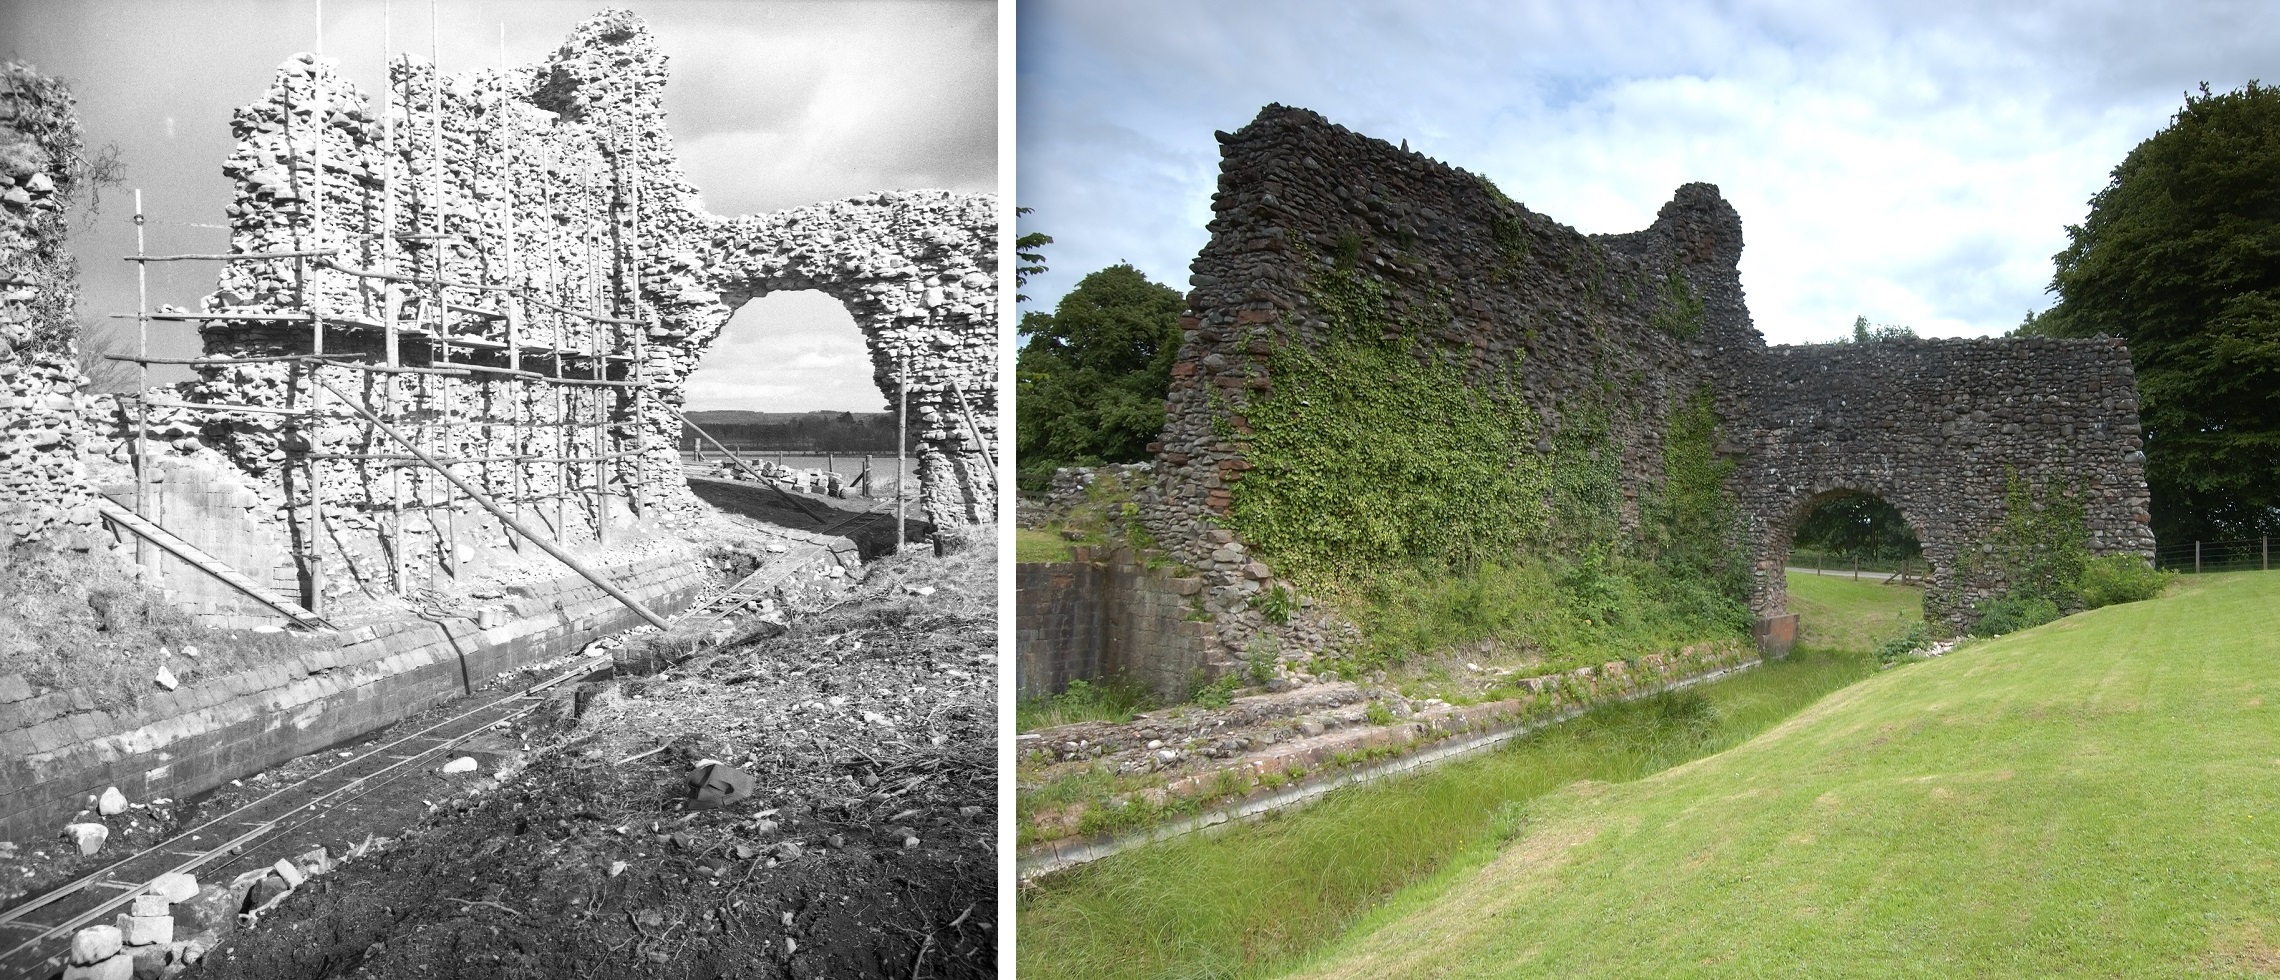 Lochmaben Castle in 1952 and now